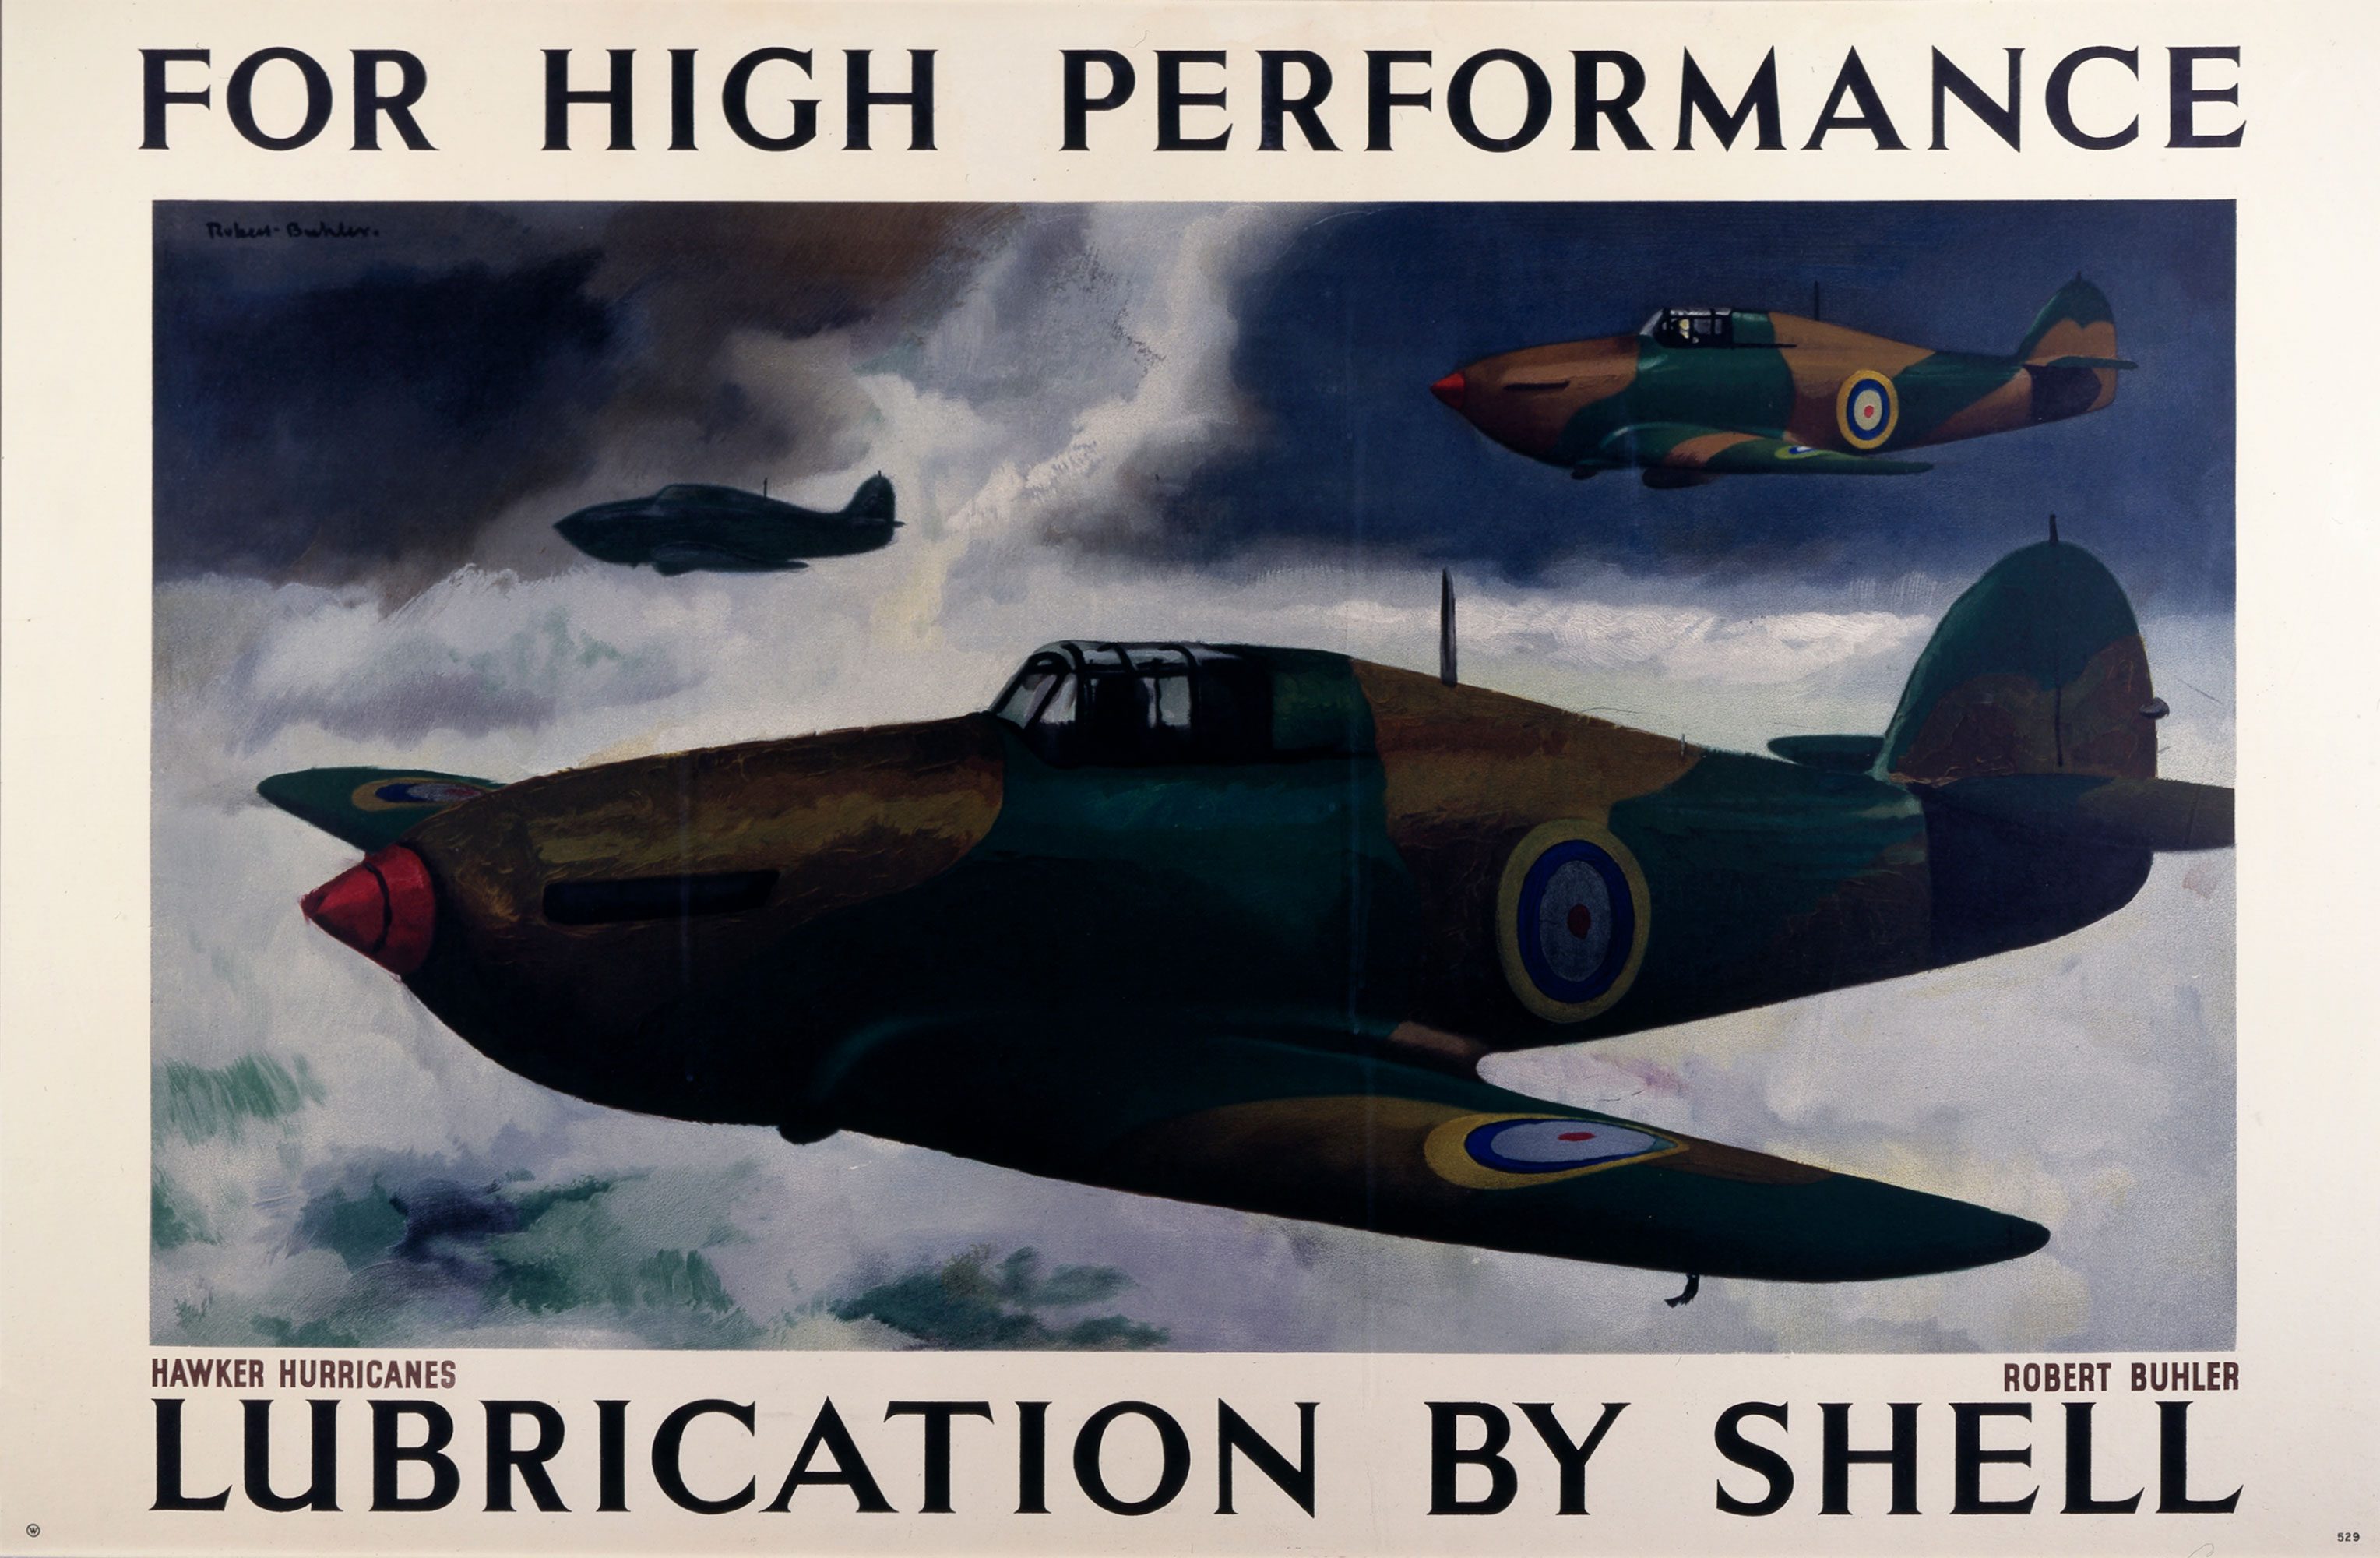 Shell poster number 529, For high performance lubrication by Shell - Hawker Hurricanes (1938) by Robert Buhler. Painting of three Hawker Hurricanes in flight.